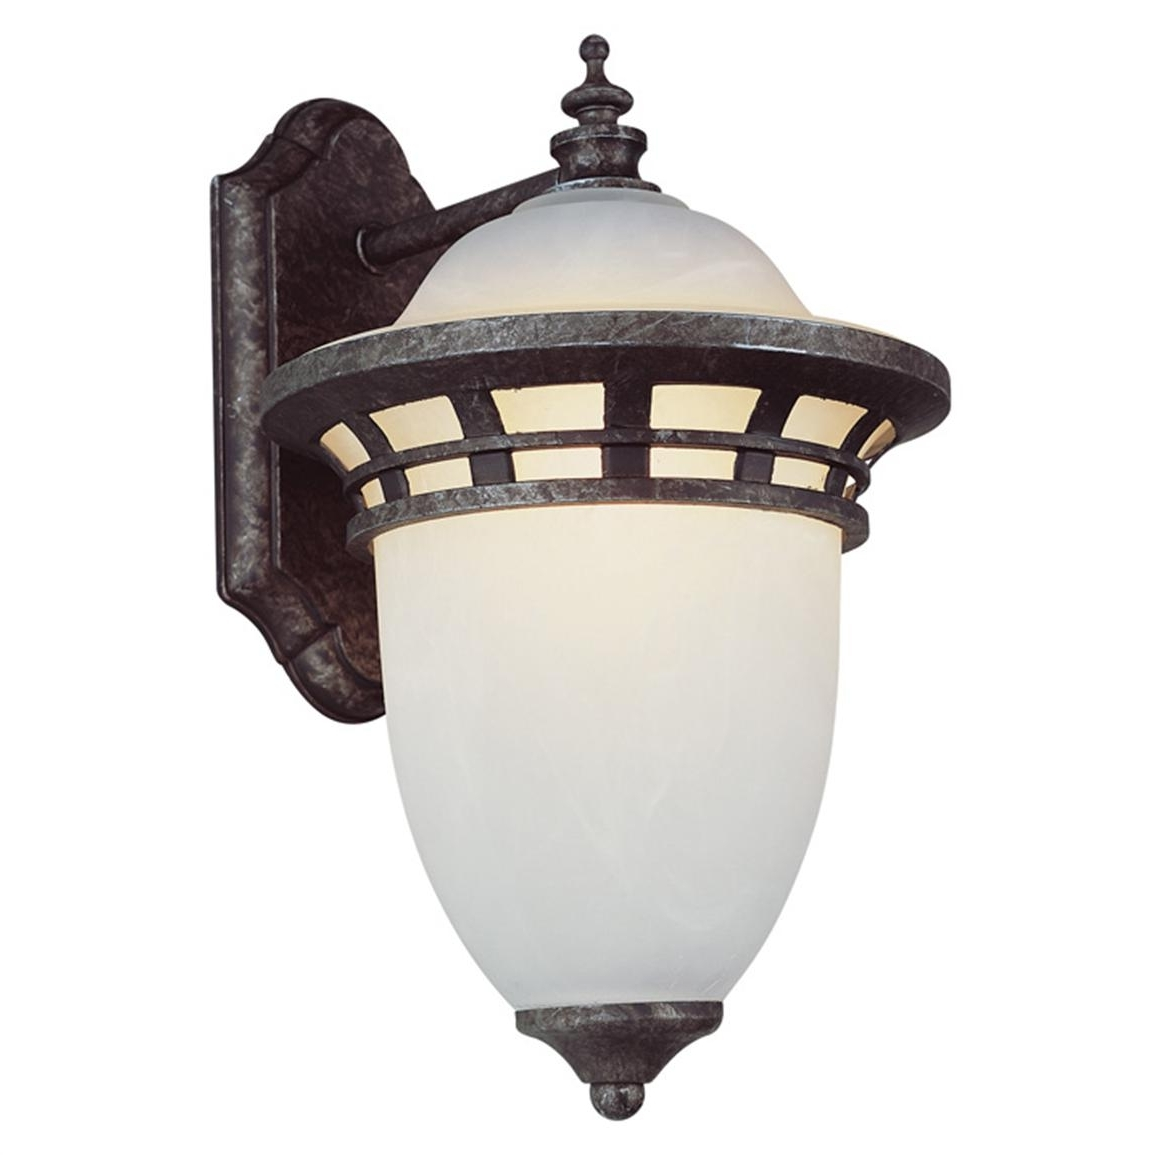 Most Up To Date Trans Globe Lighting 1 – Light Outdoor Antique Wall Lantern – 173599 With Regard To Outside Wall Globe Lights (View 11 of 20)